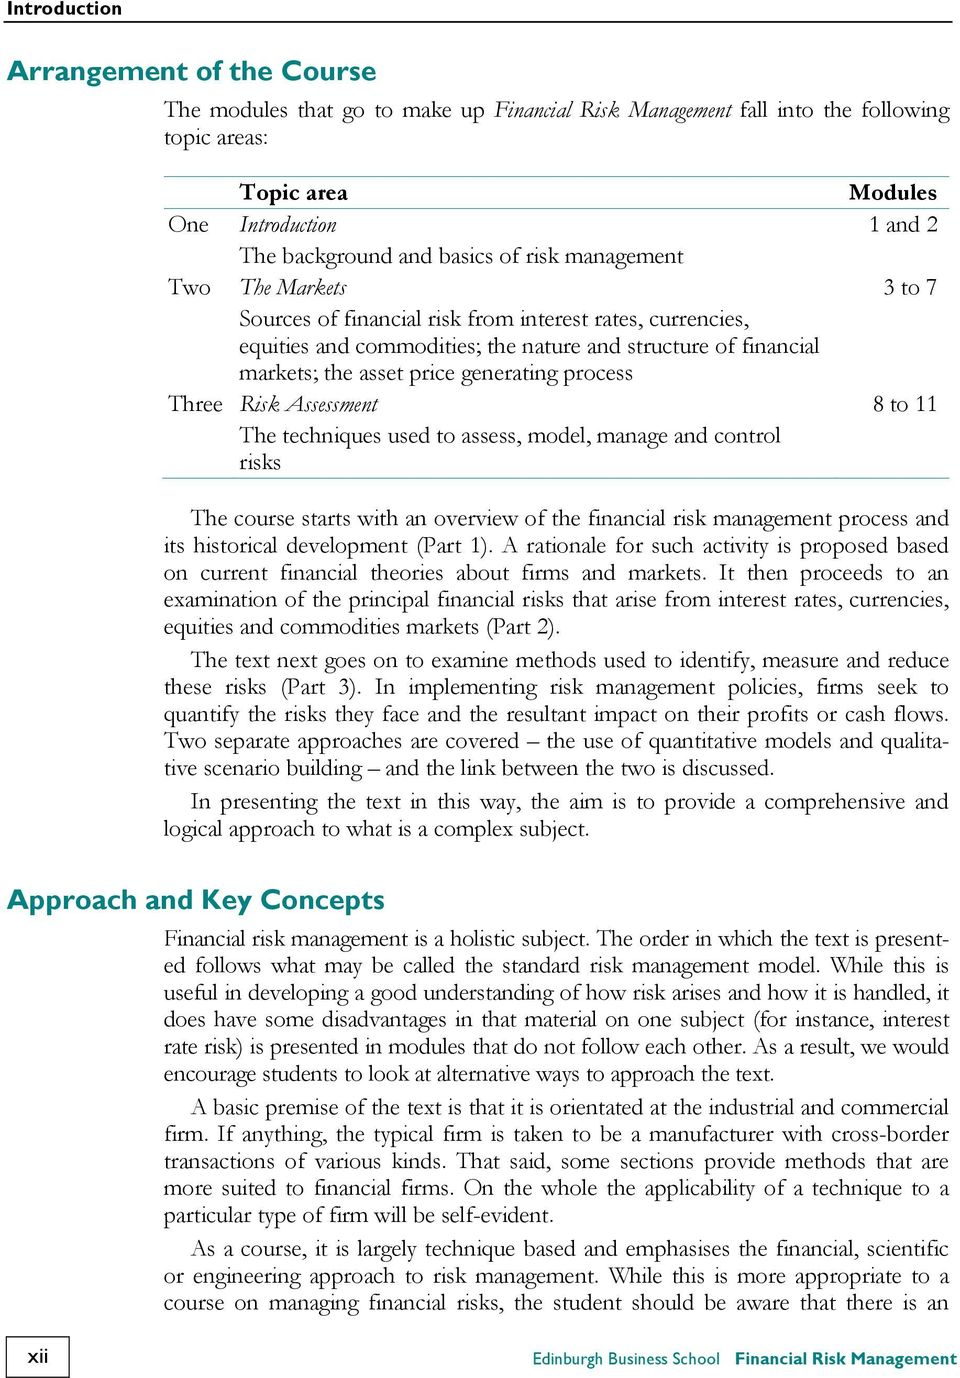 ... Edinburgh Business School Financial Risk Management. generating process  Three Risk Assessment 8 to 11 The techniques used to assess, model,